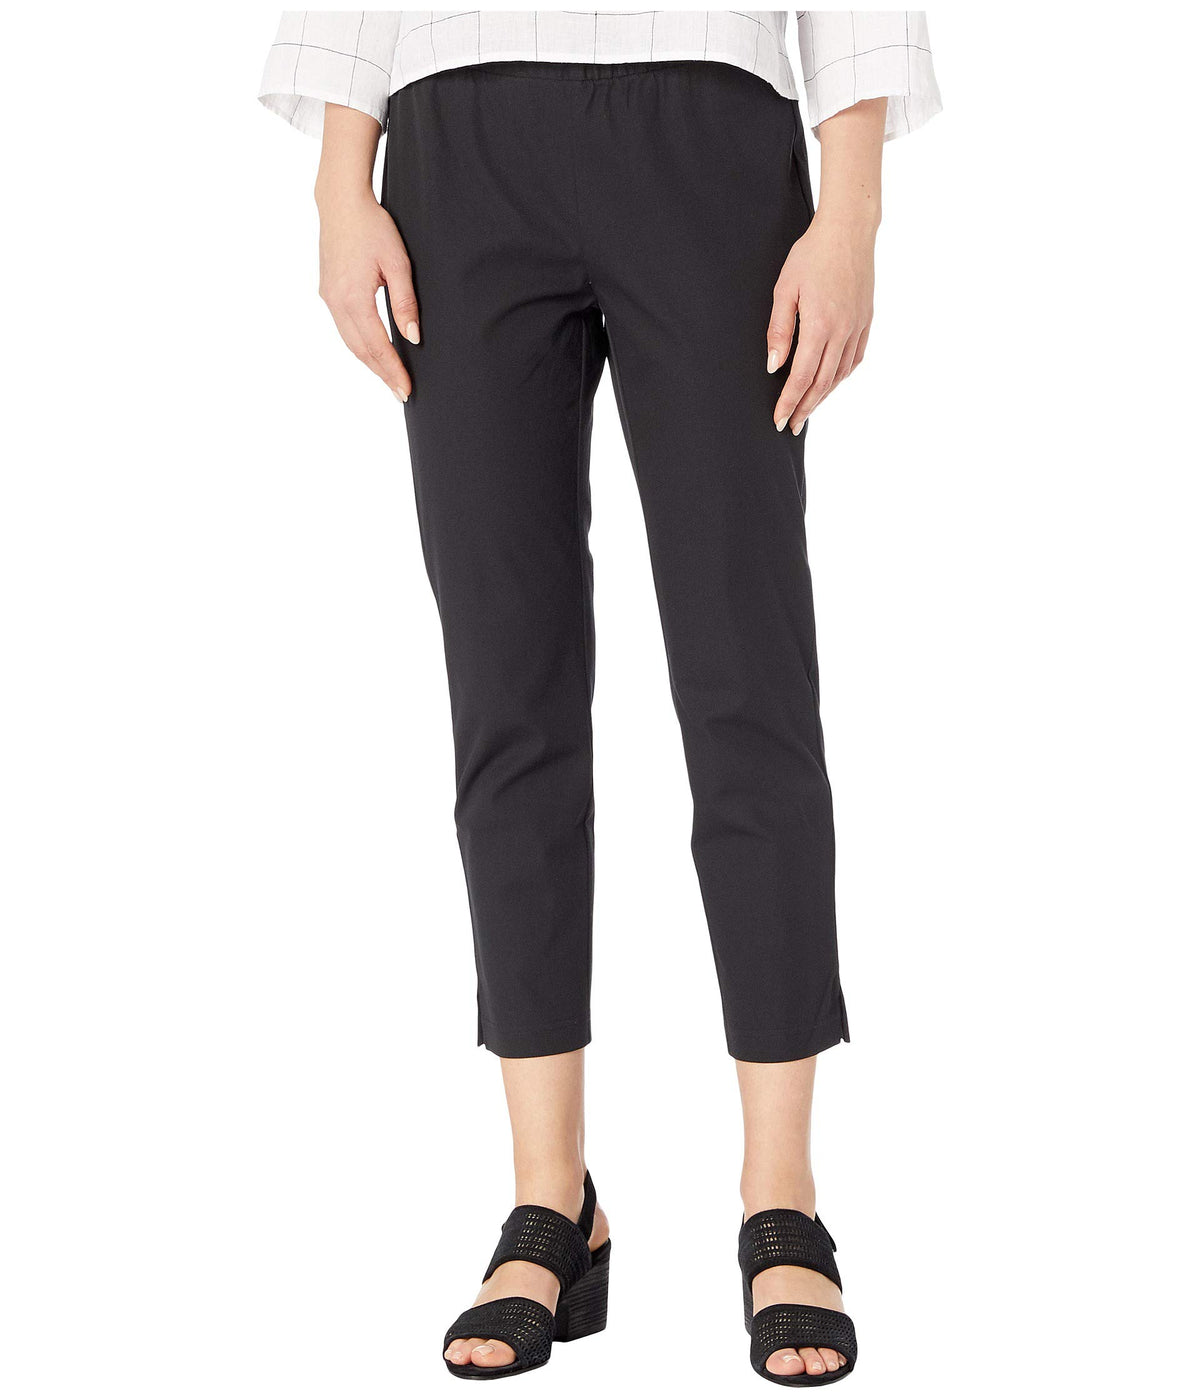 Organic Cotton Stretch Twill Mid-Rise Ankle Pants w/ Slits